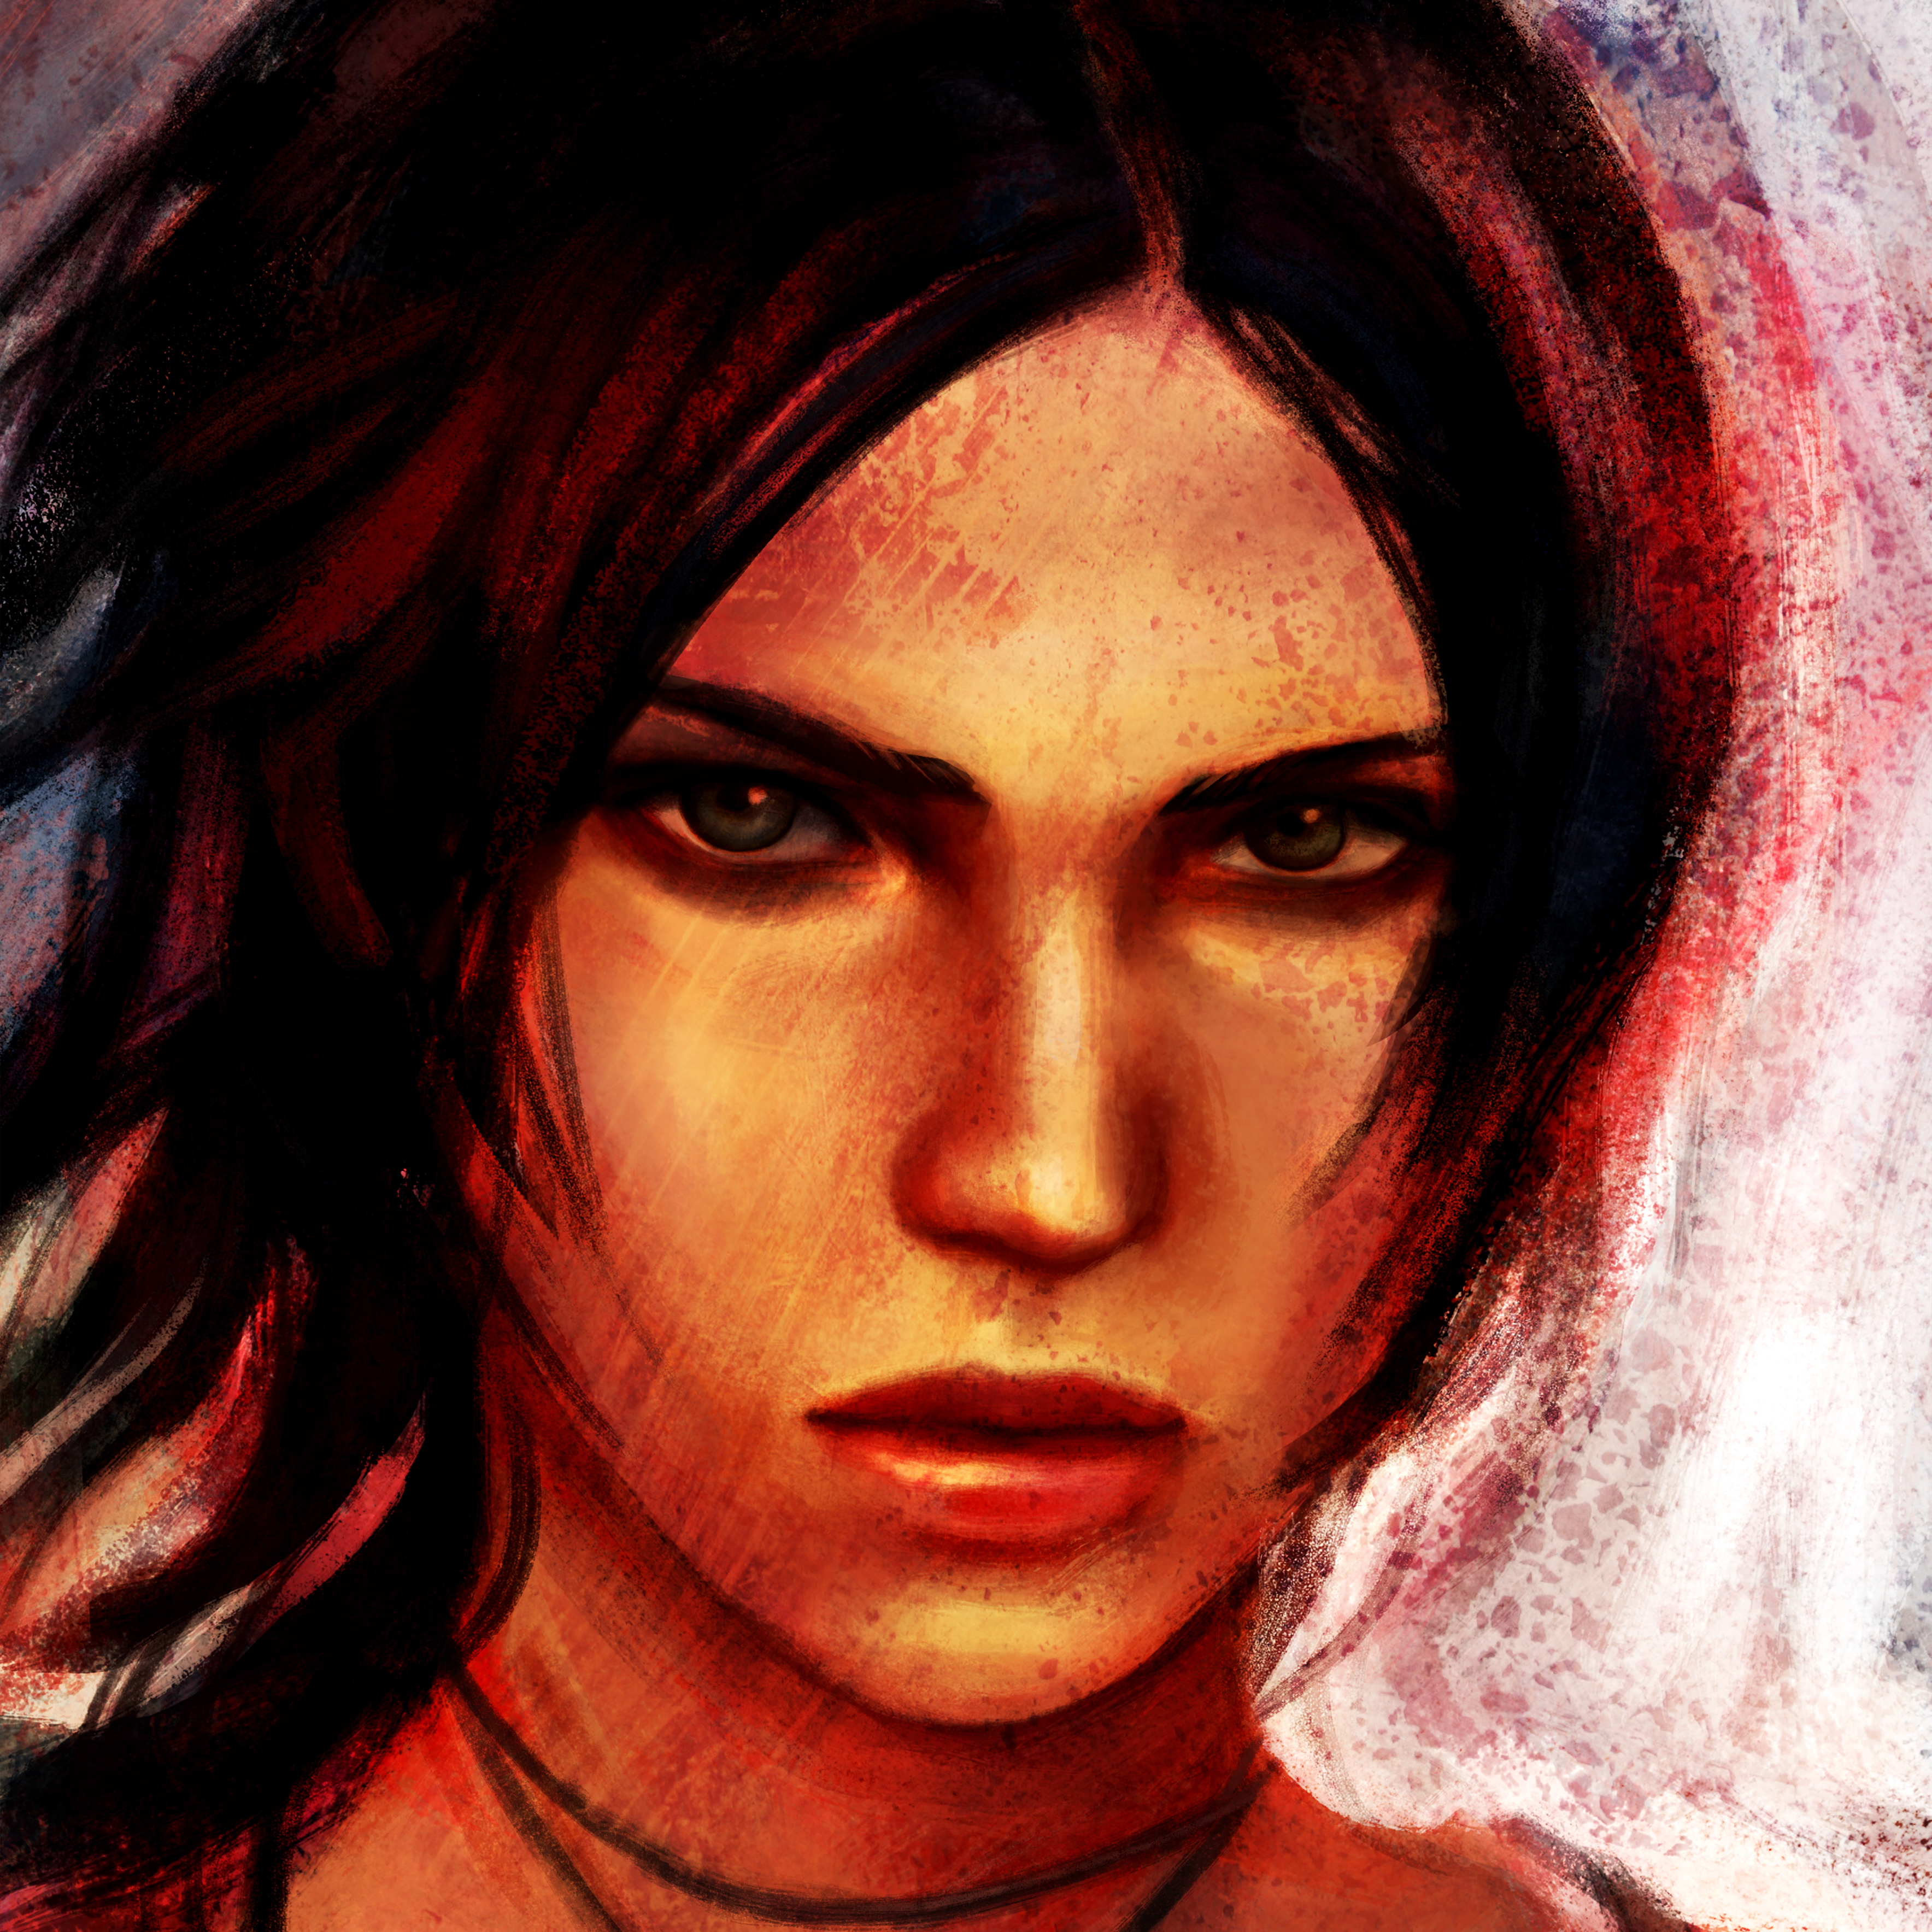 Pictures Tomb Raider 2013 Lara Croft Face Girls Vdeo Game 3535x3535